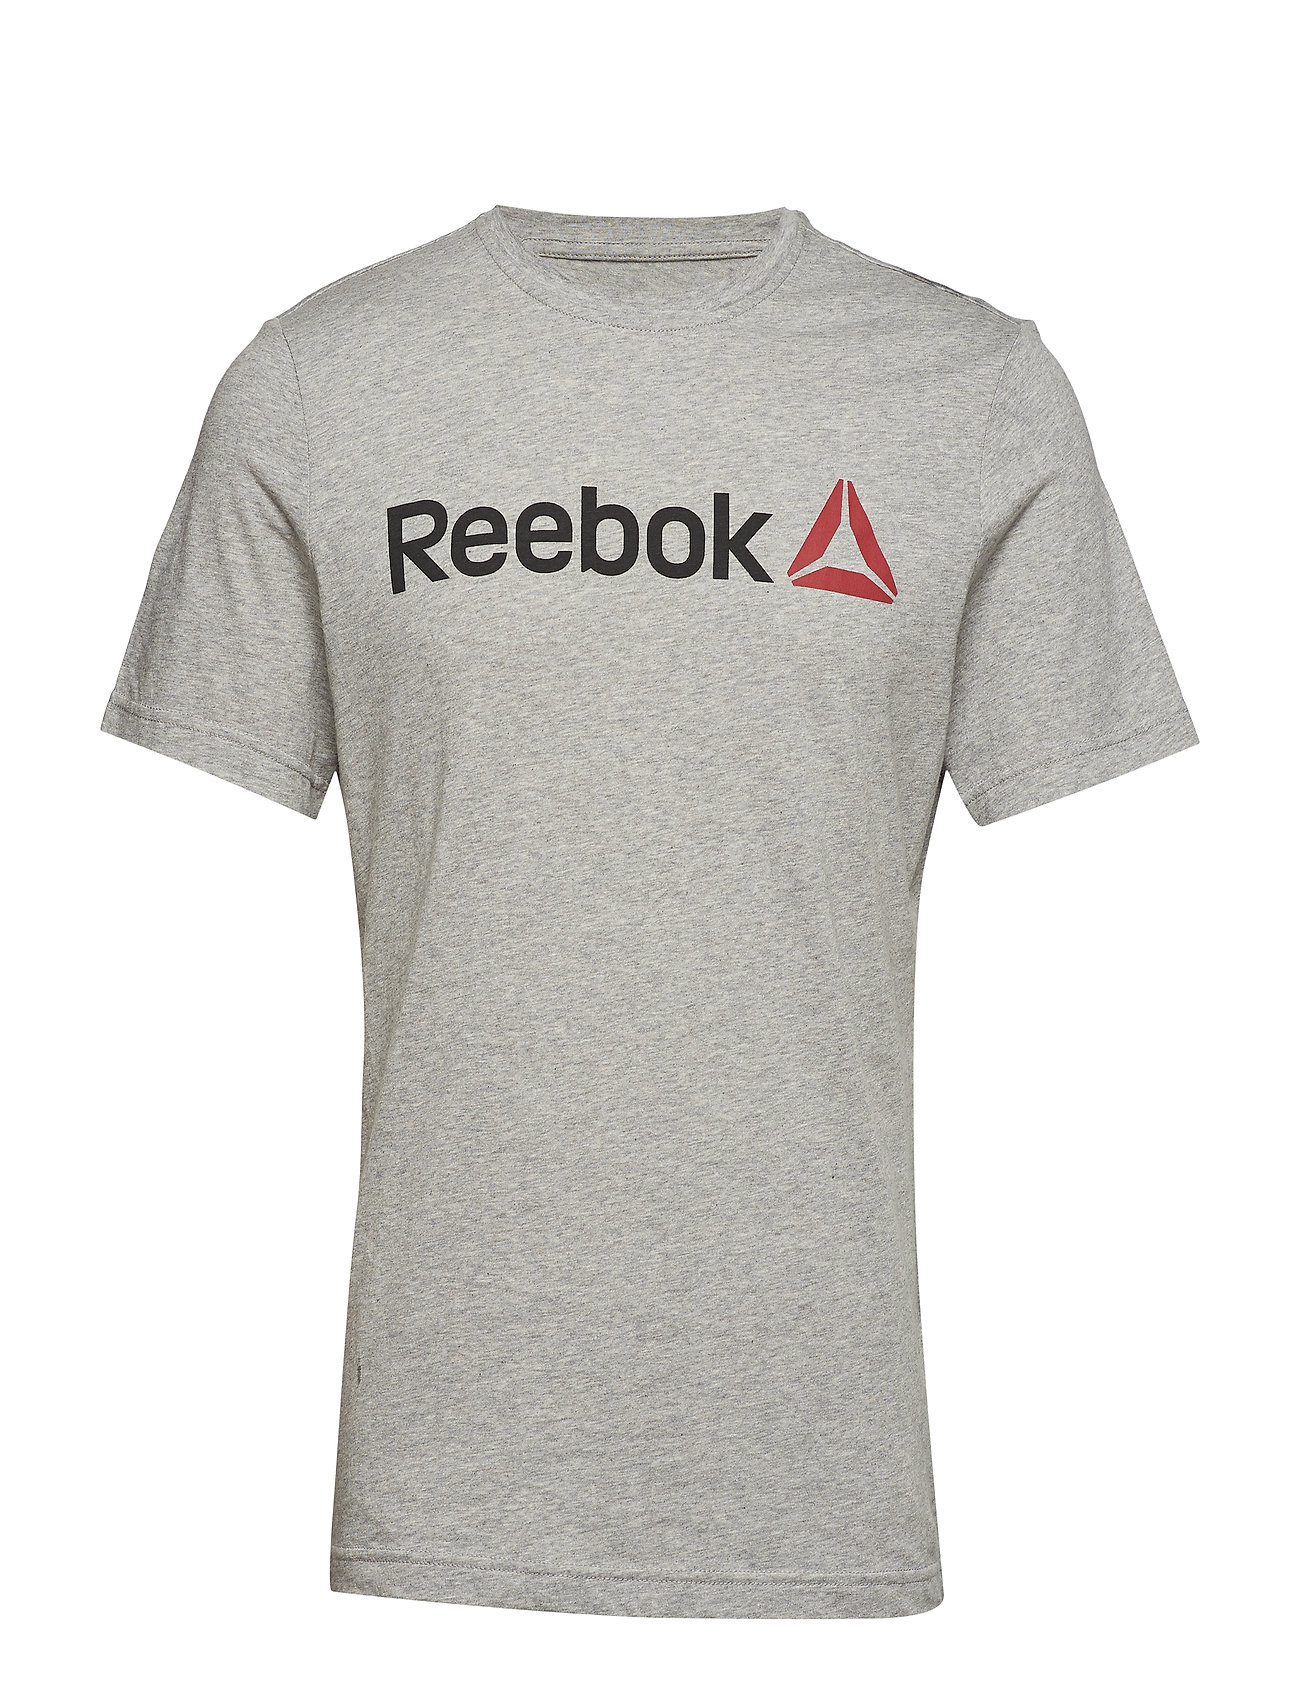 Reebok Performance QQR- Reebok Linear Read - MGREYH